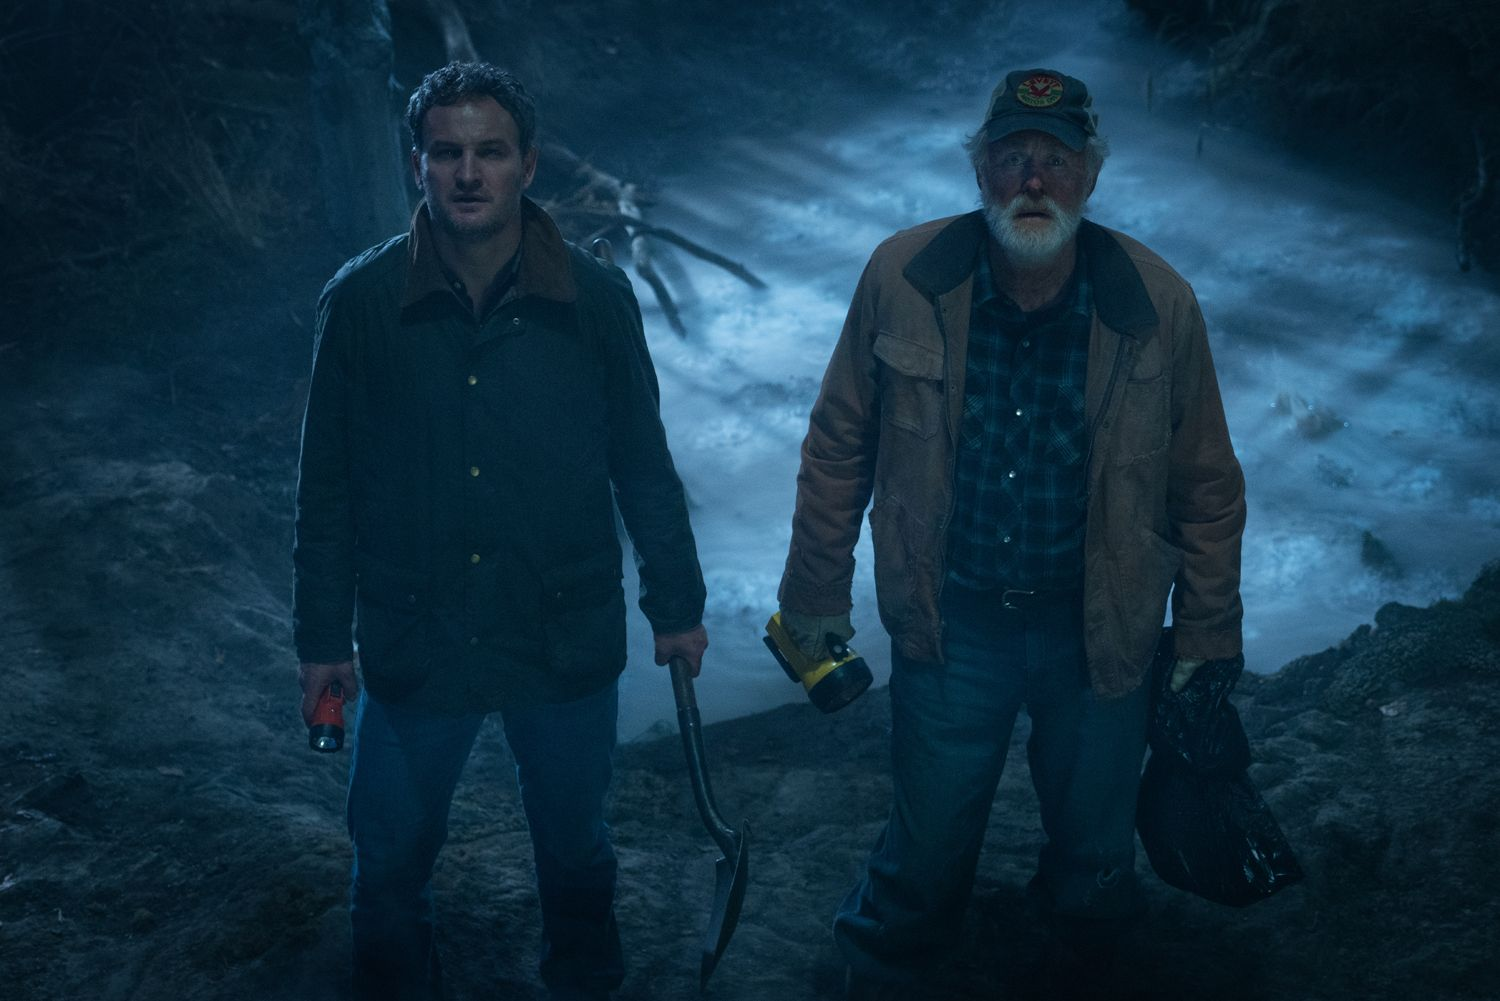 Movie Poster 2019: Flipboard: PET SEMATARY: The Official Trailer For The